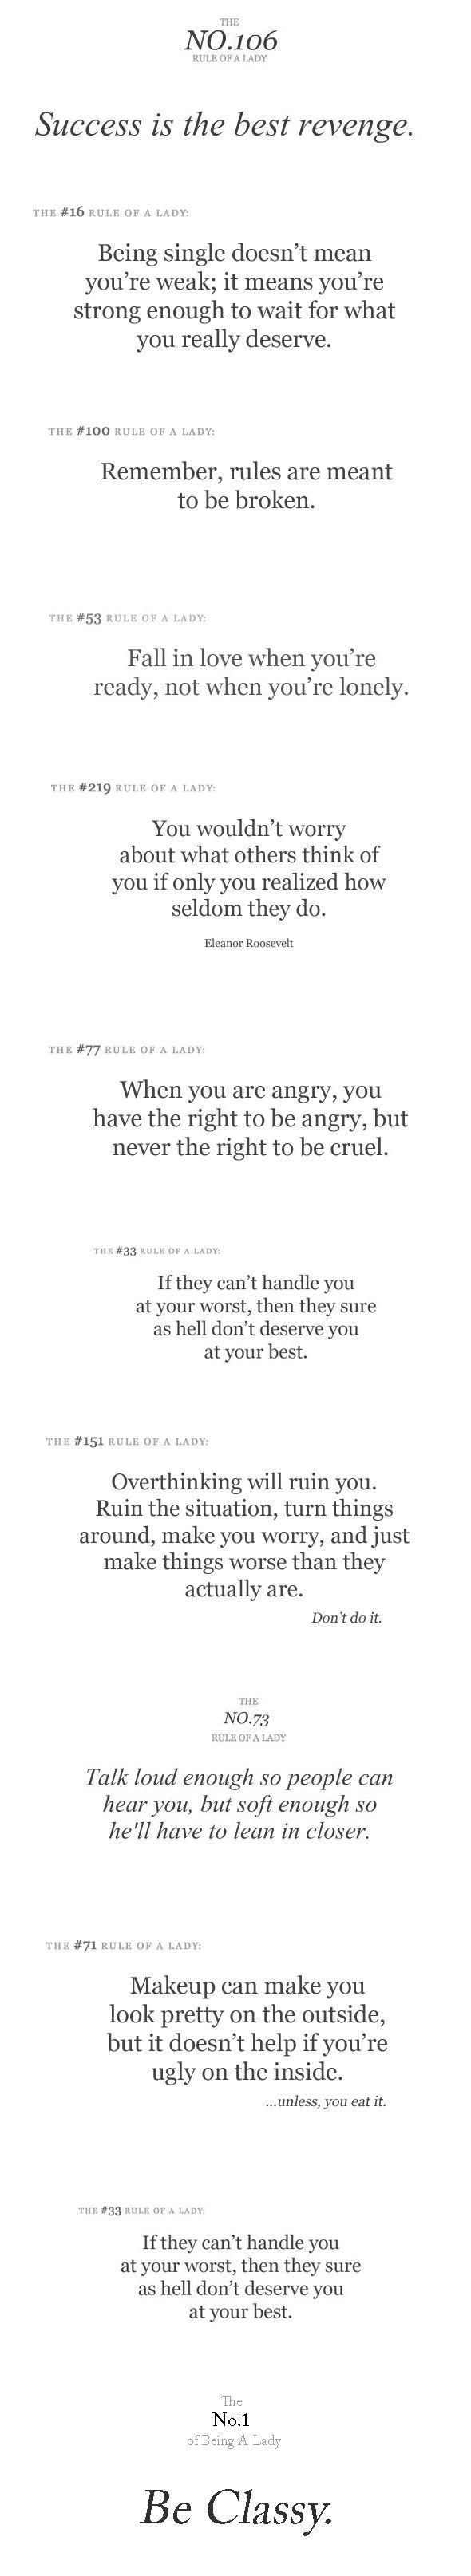 Some self realization right here! :) Made me smile actually! My fav's: rule #16 and rule #53!